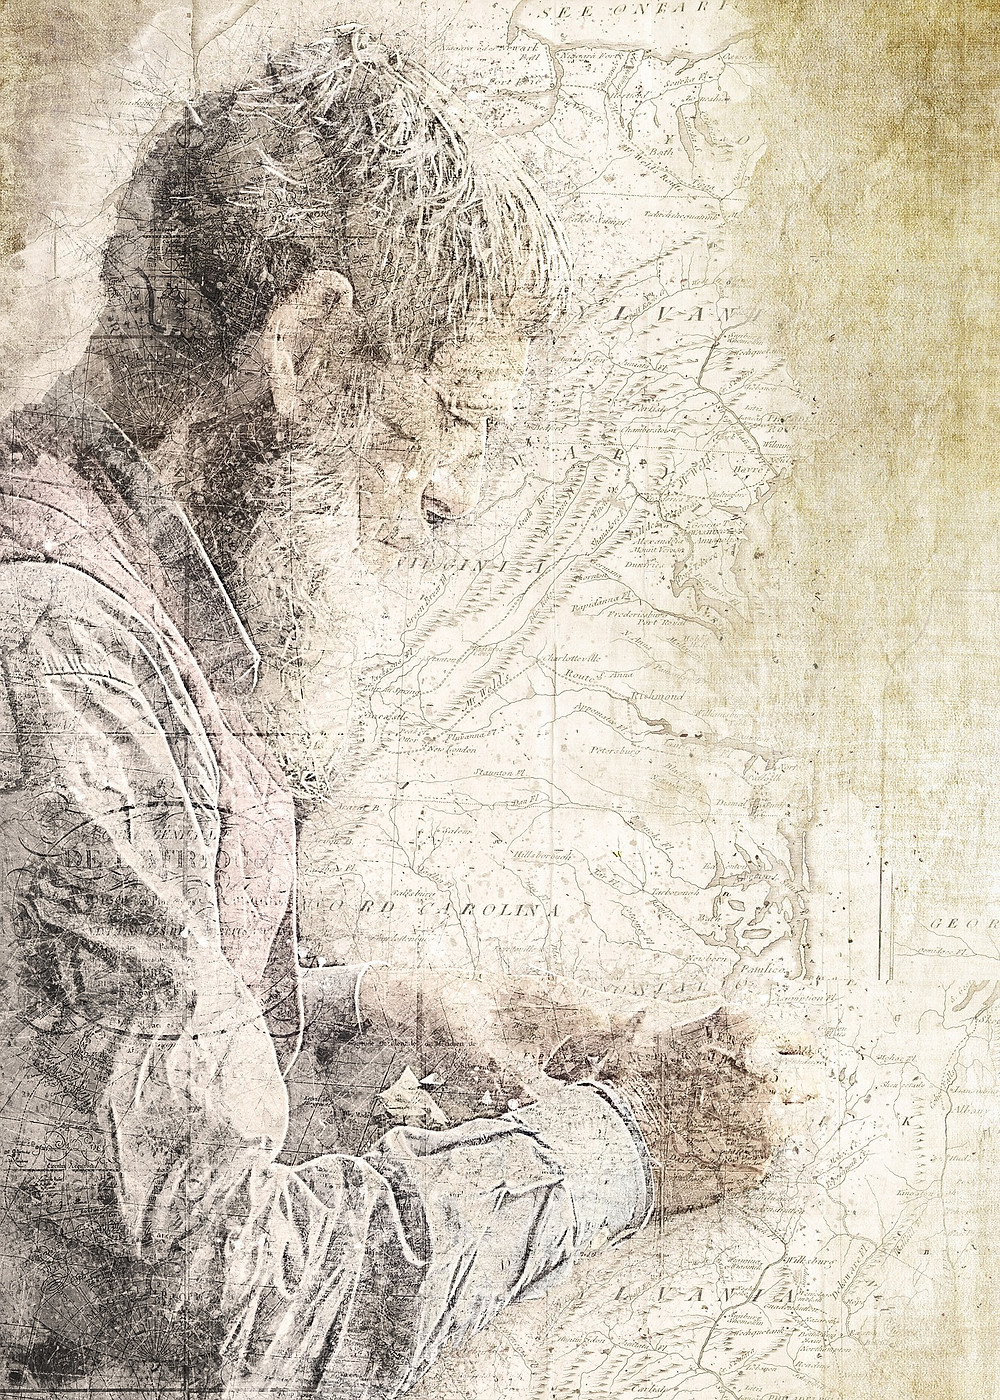 This is a picture of a map with a drawing of a man on top. We can see the profile of the man, who is writing something. The map is of the eastern United States.